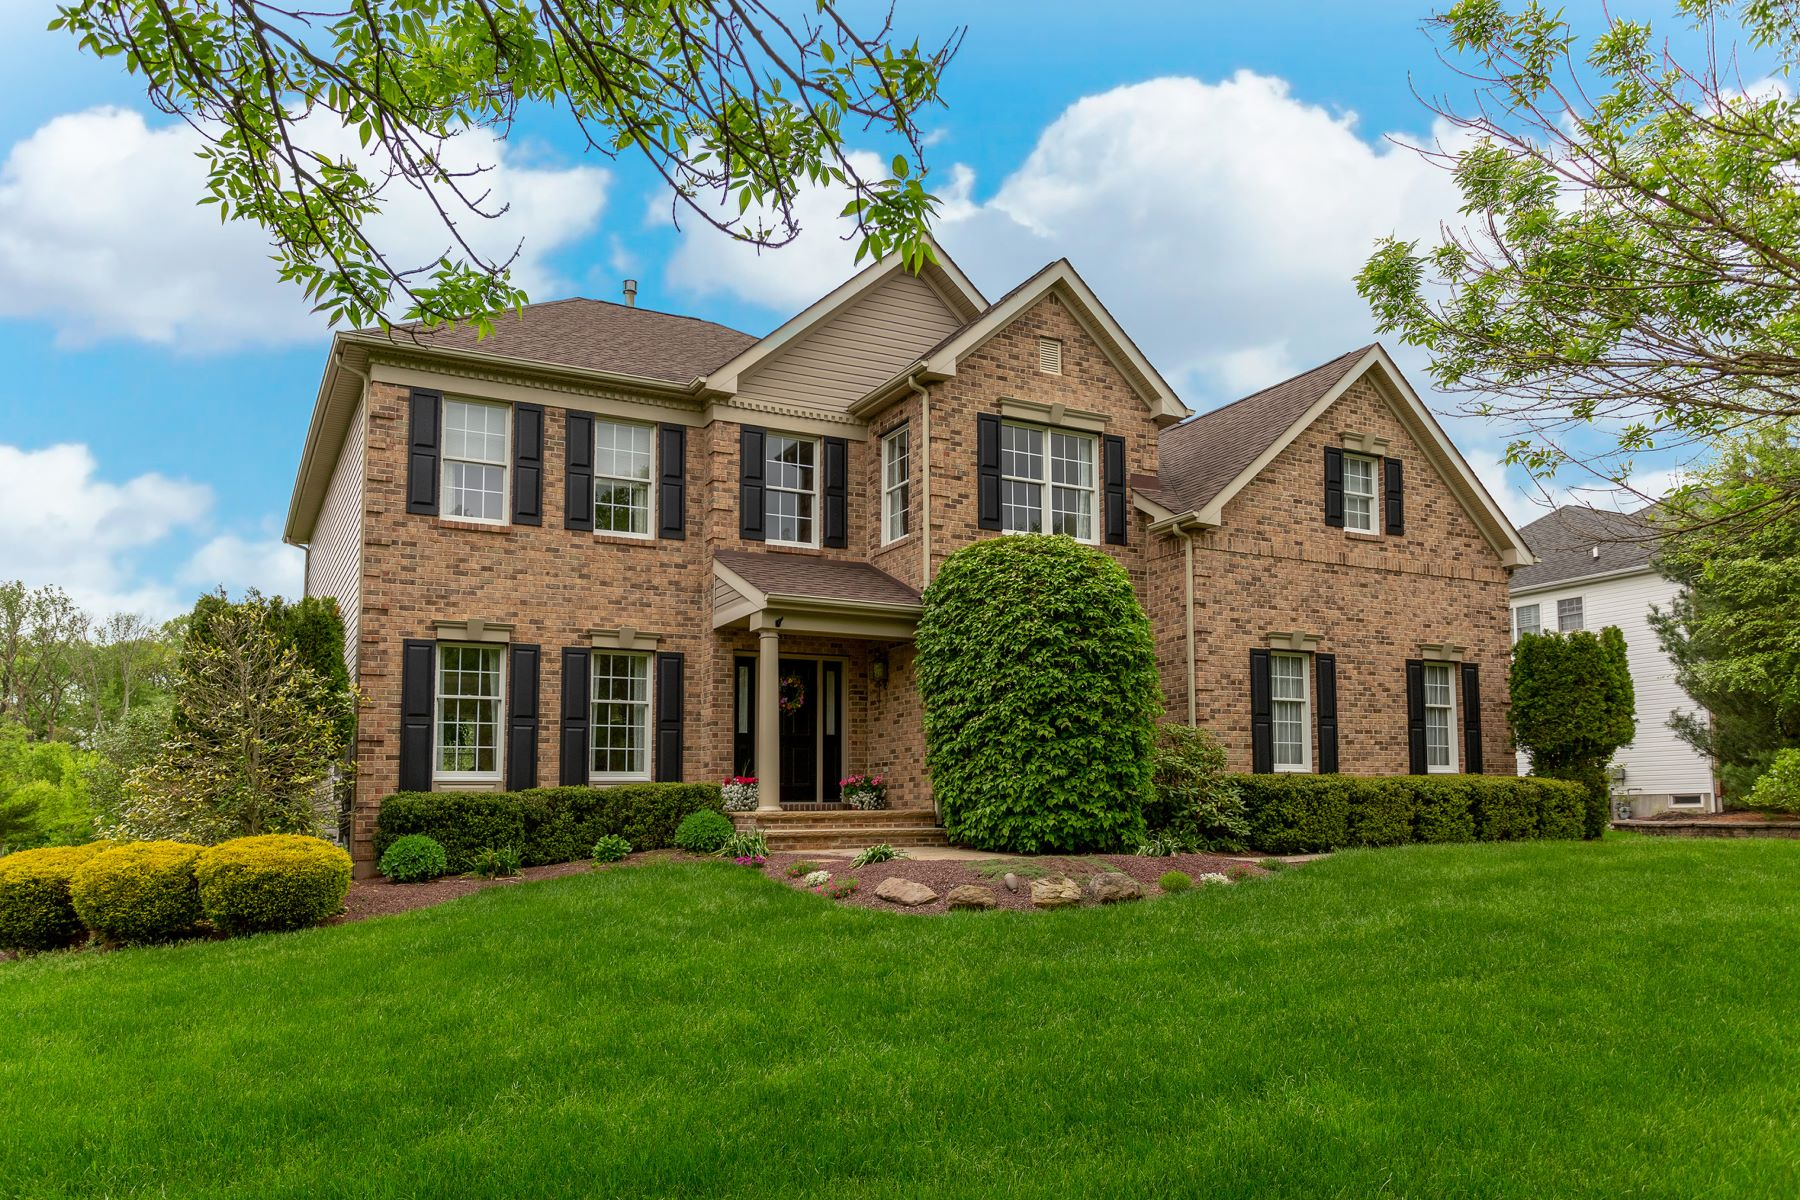 Single Family Homes for Sale at 4279 ARBOR LN Doylestown, Pennsylvania 18902 United States